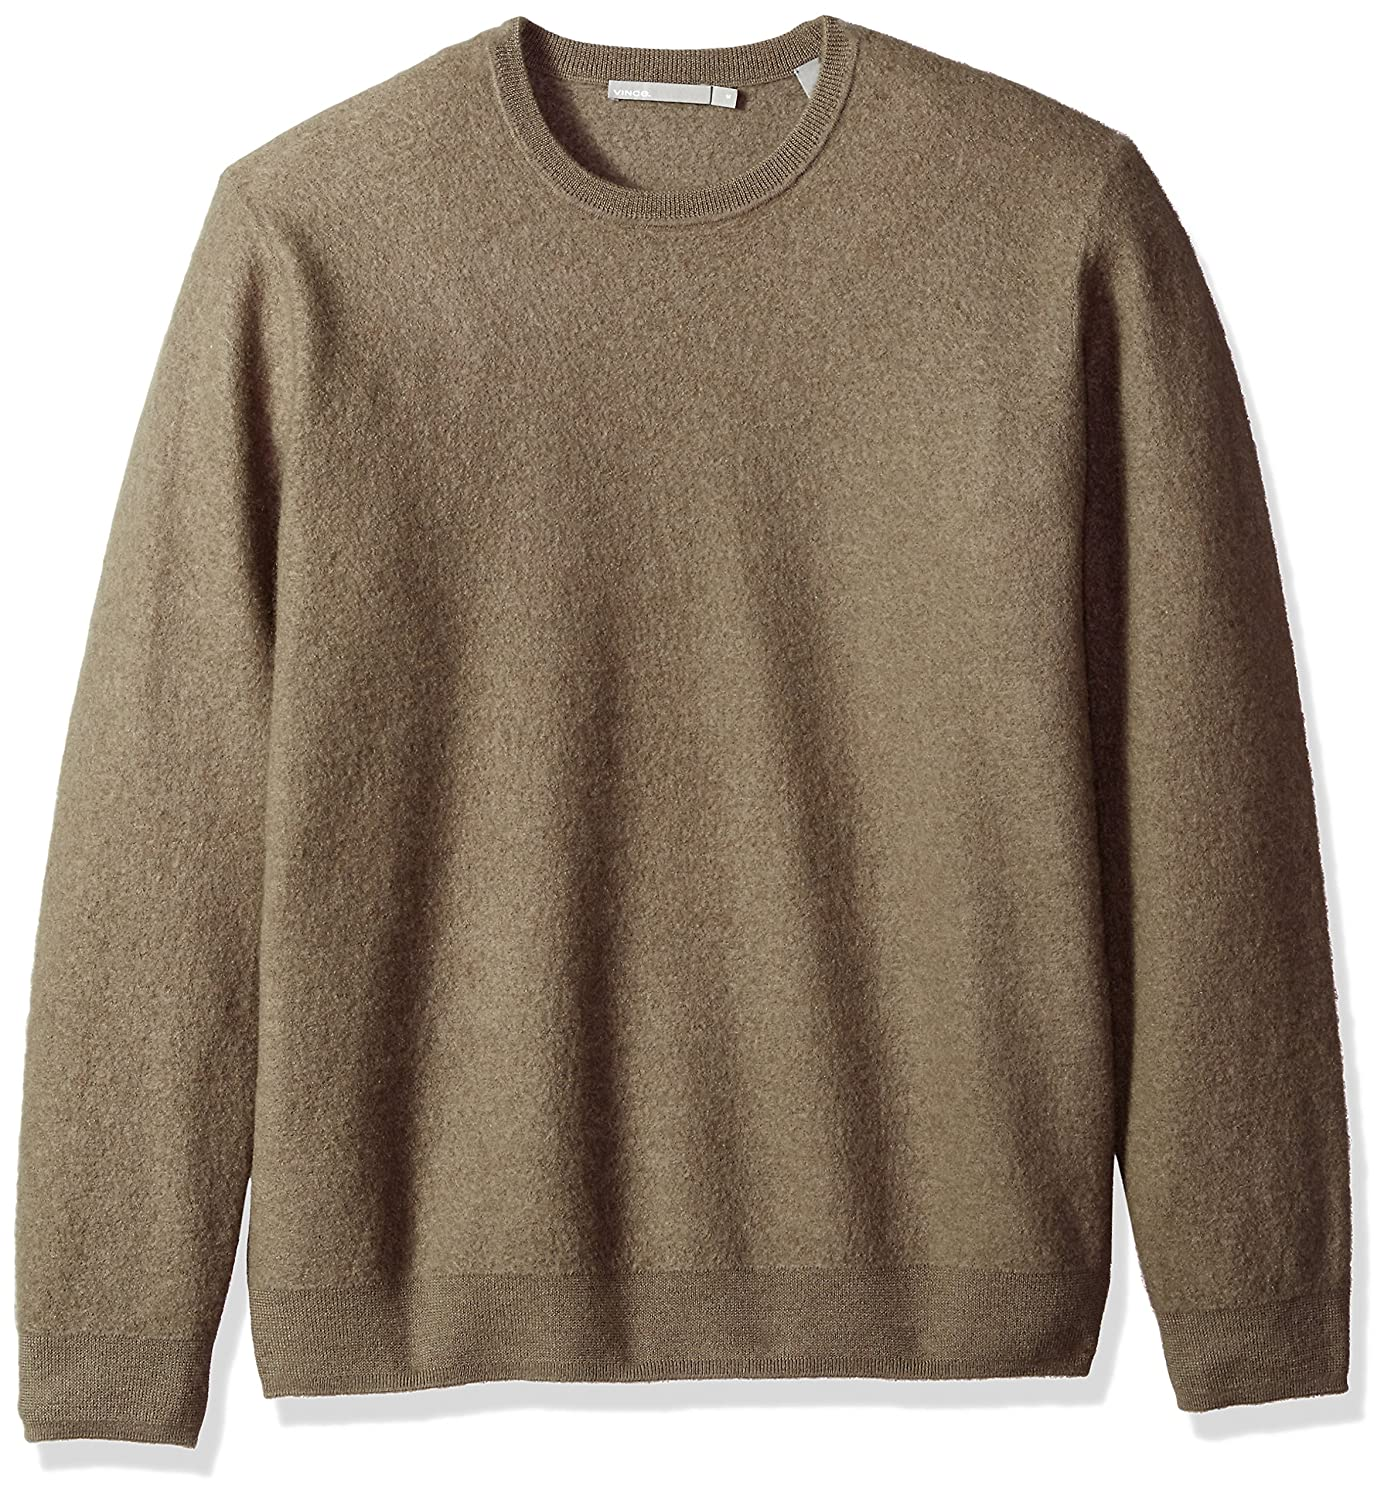 Vince Mens Simmered Cashmere Oversized Crew Neck Sweater